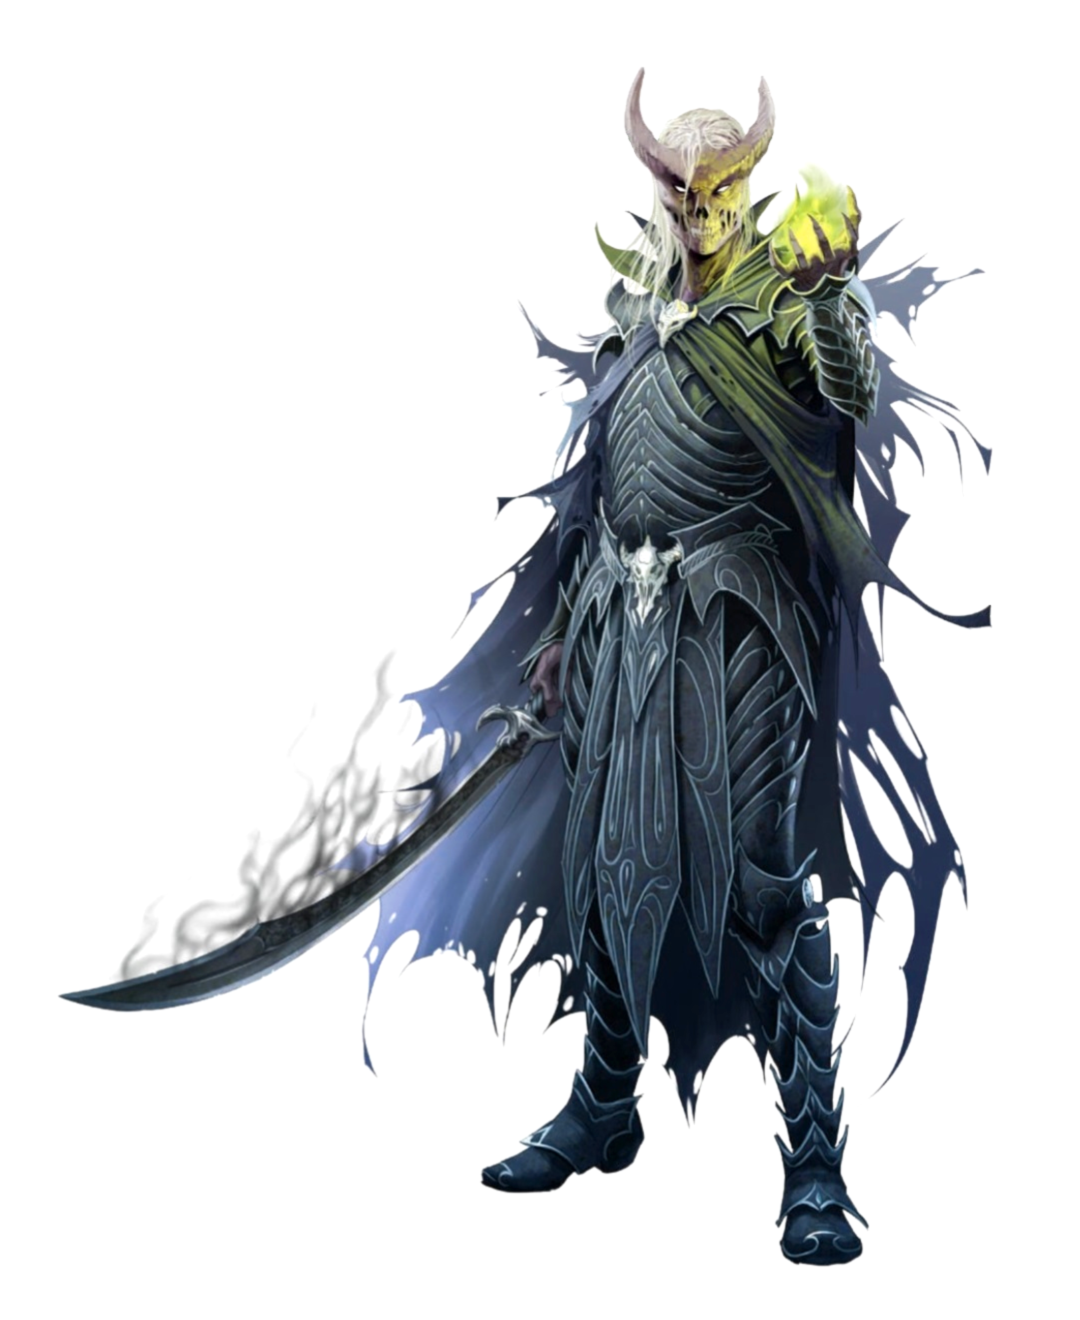 Dnd Lich : Tiefling, Magus, Pathfinder, PFRPG, Fantasy, Characters,, Dungeons, Dragons, Warlock